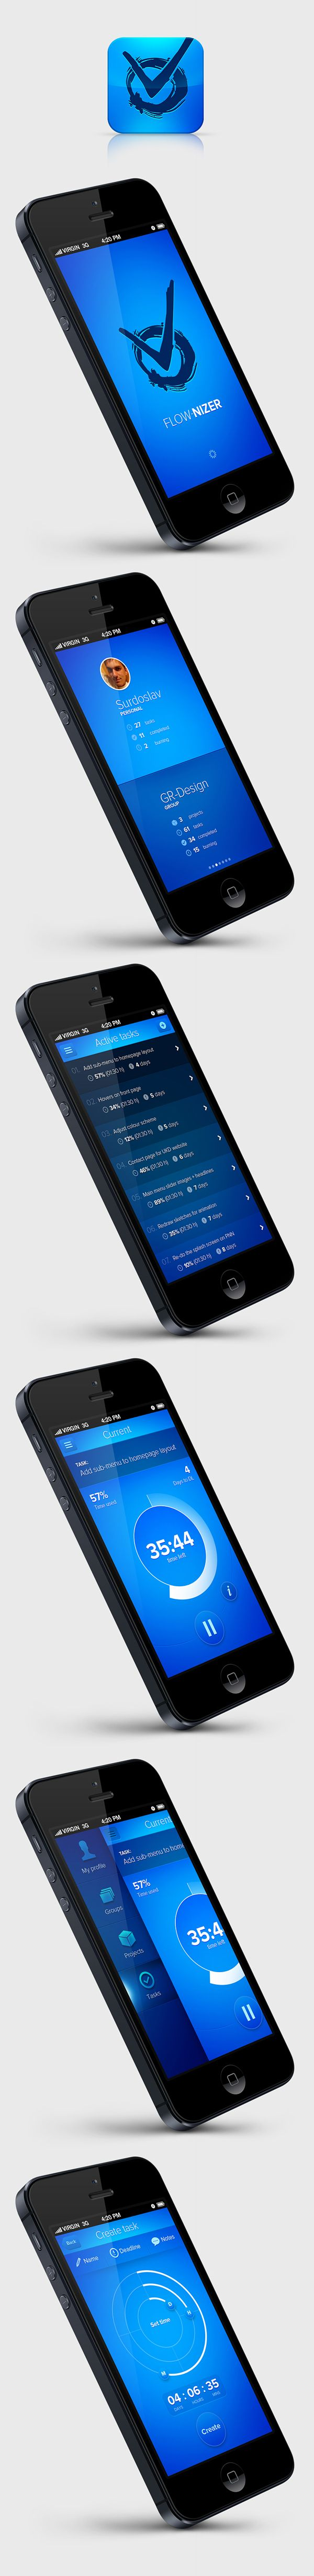 FLOW.NIZER  concept app by Martin Schurdak, via Behance